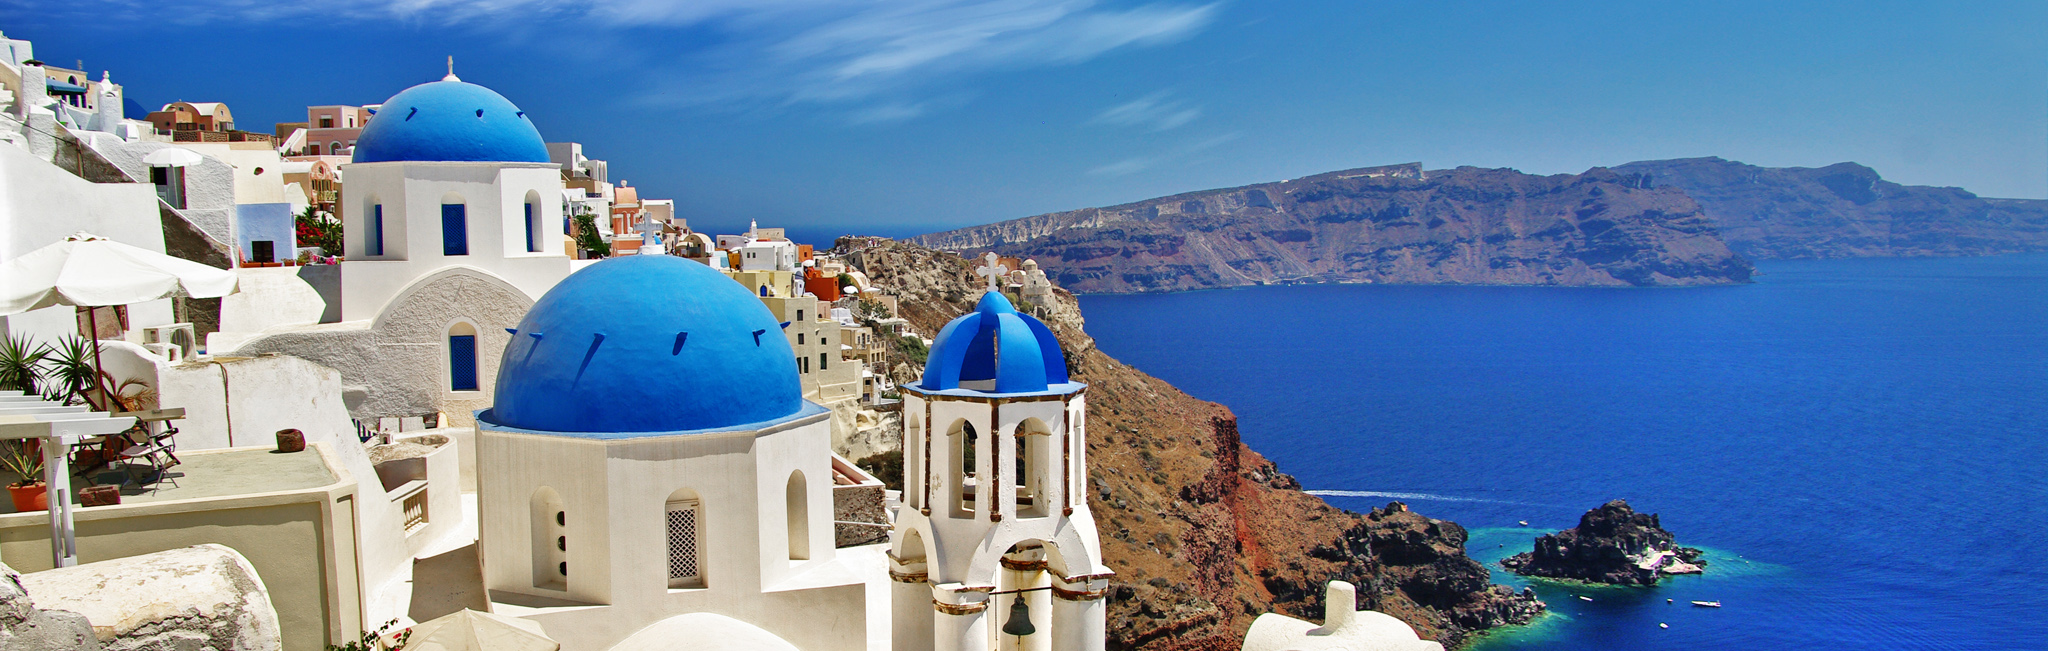 Best Greece Vacations & Tours | Greek Island Vacations